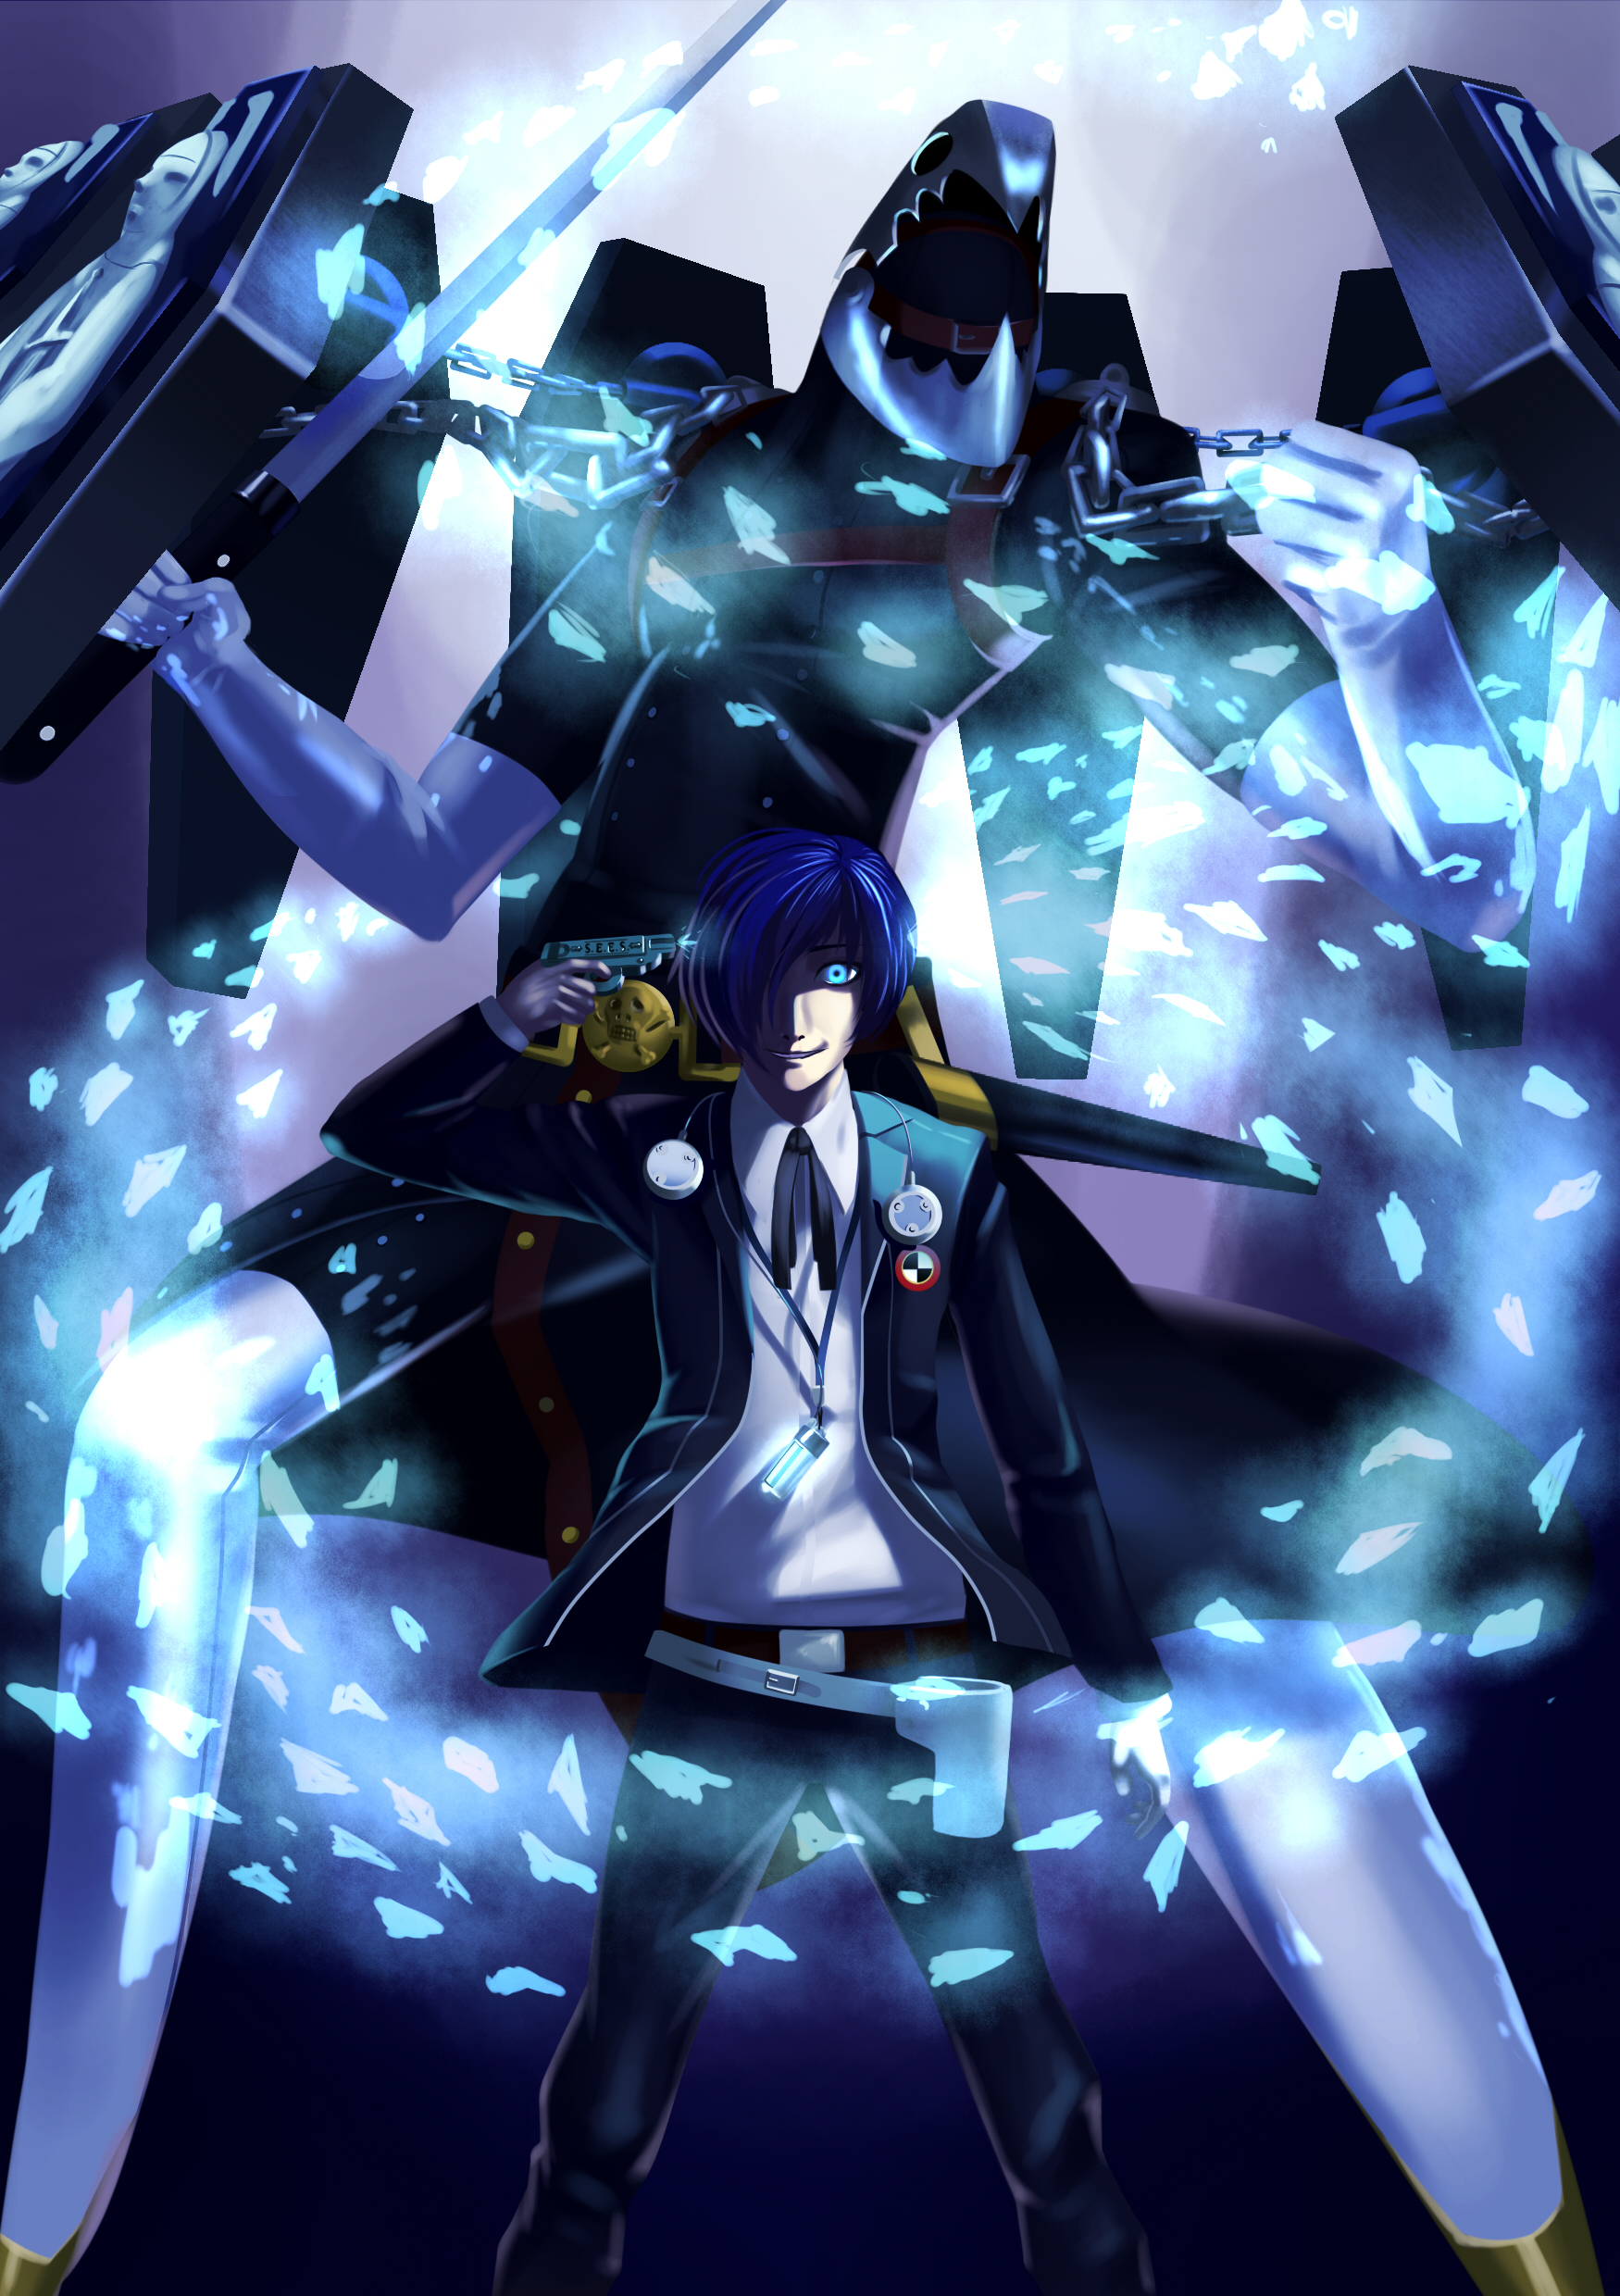 Persona 3 Protagonist And Thanatos By Bodki 2 On Deviantart